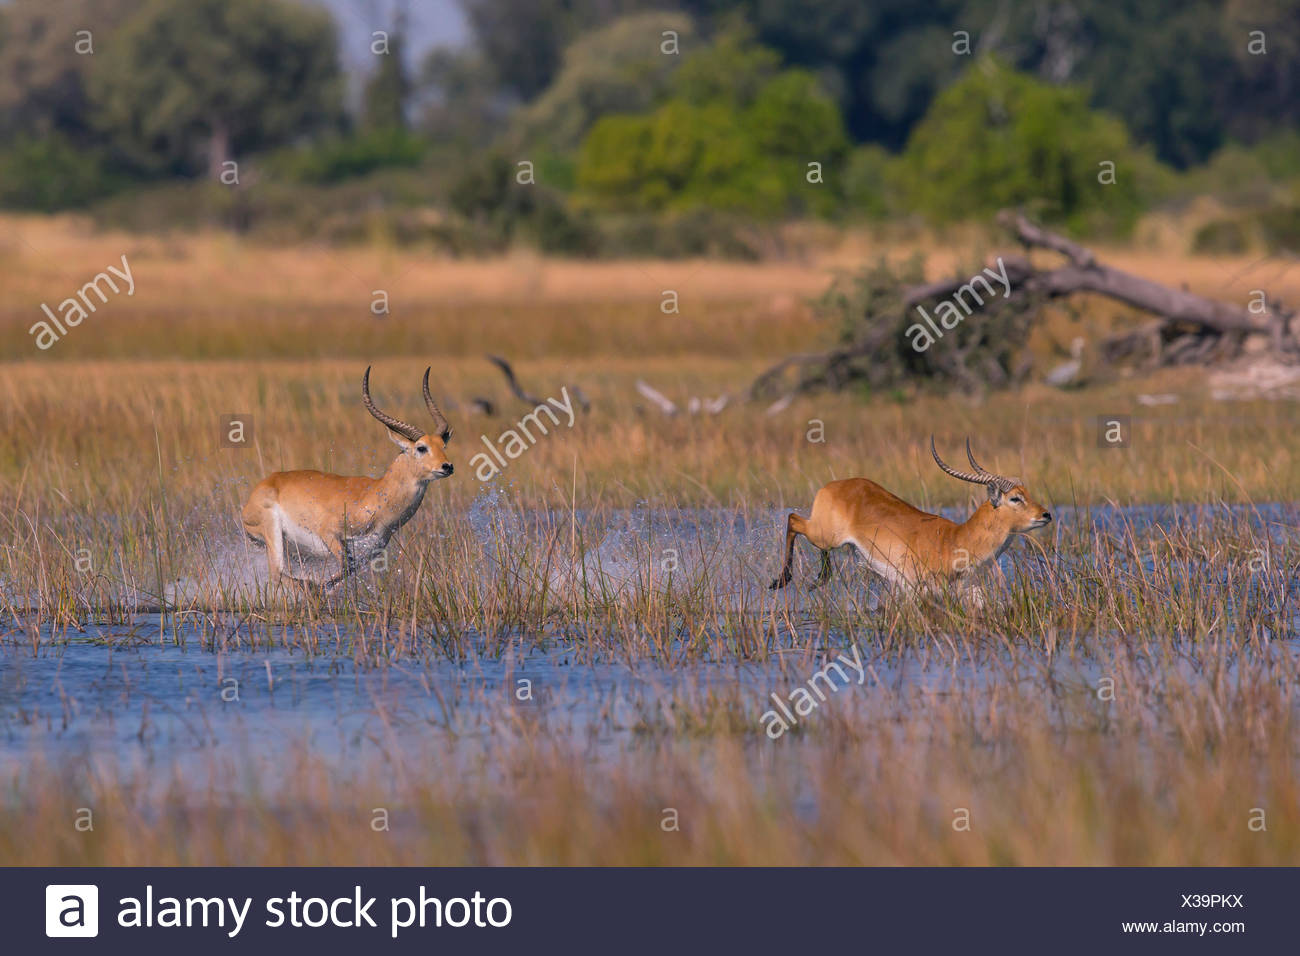 Red Lechwe (Kobus leche leche) pair taking flight in leaping bounds through the freshwater marsh - Stock Image